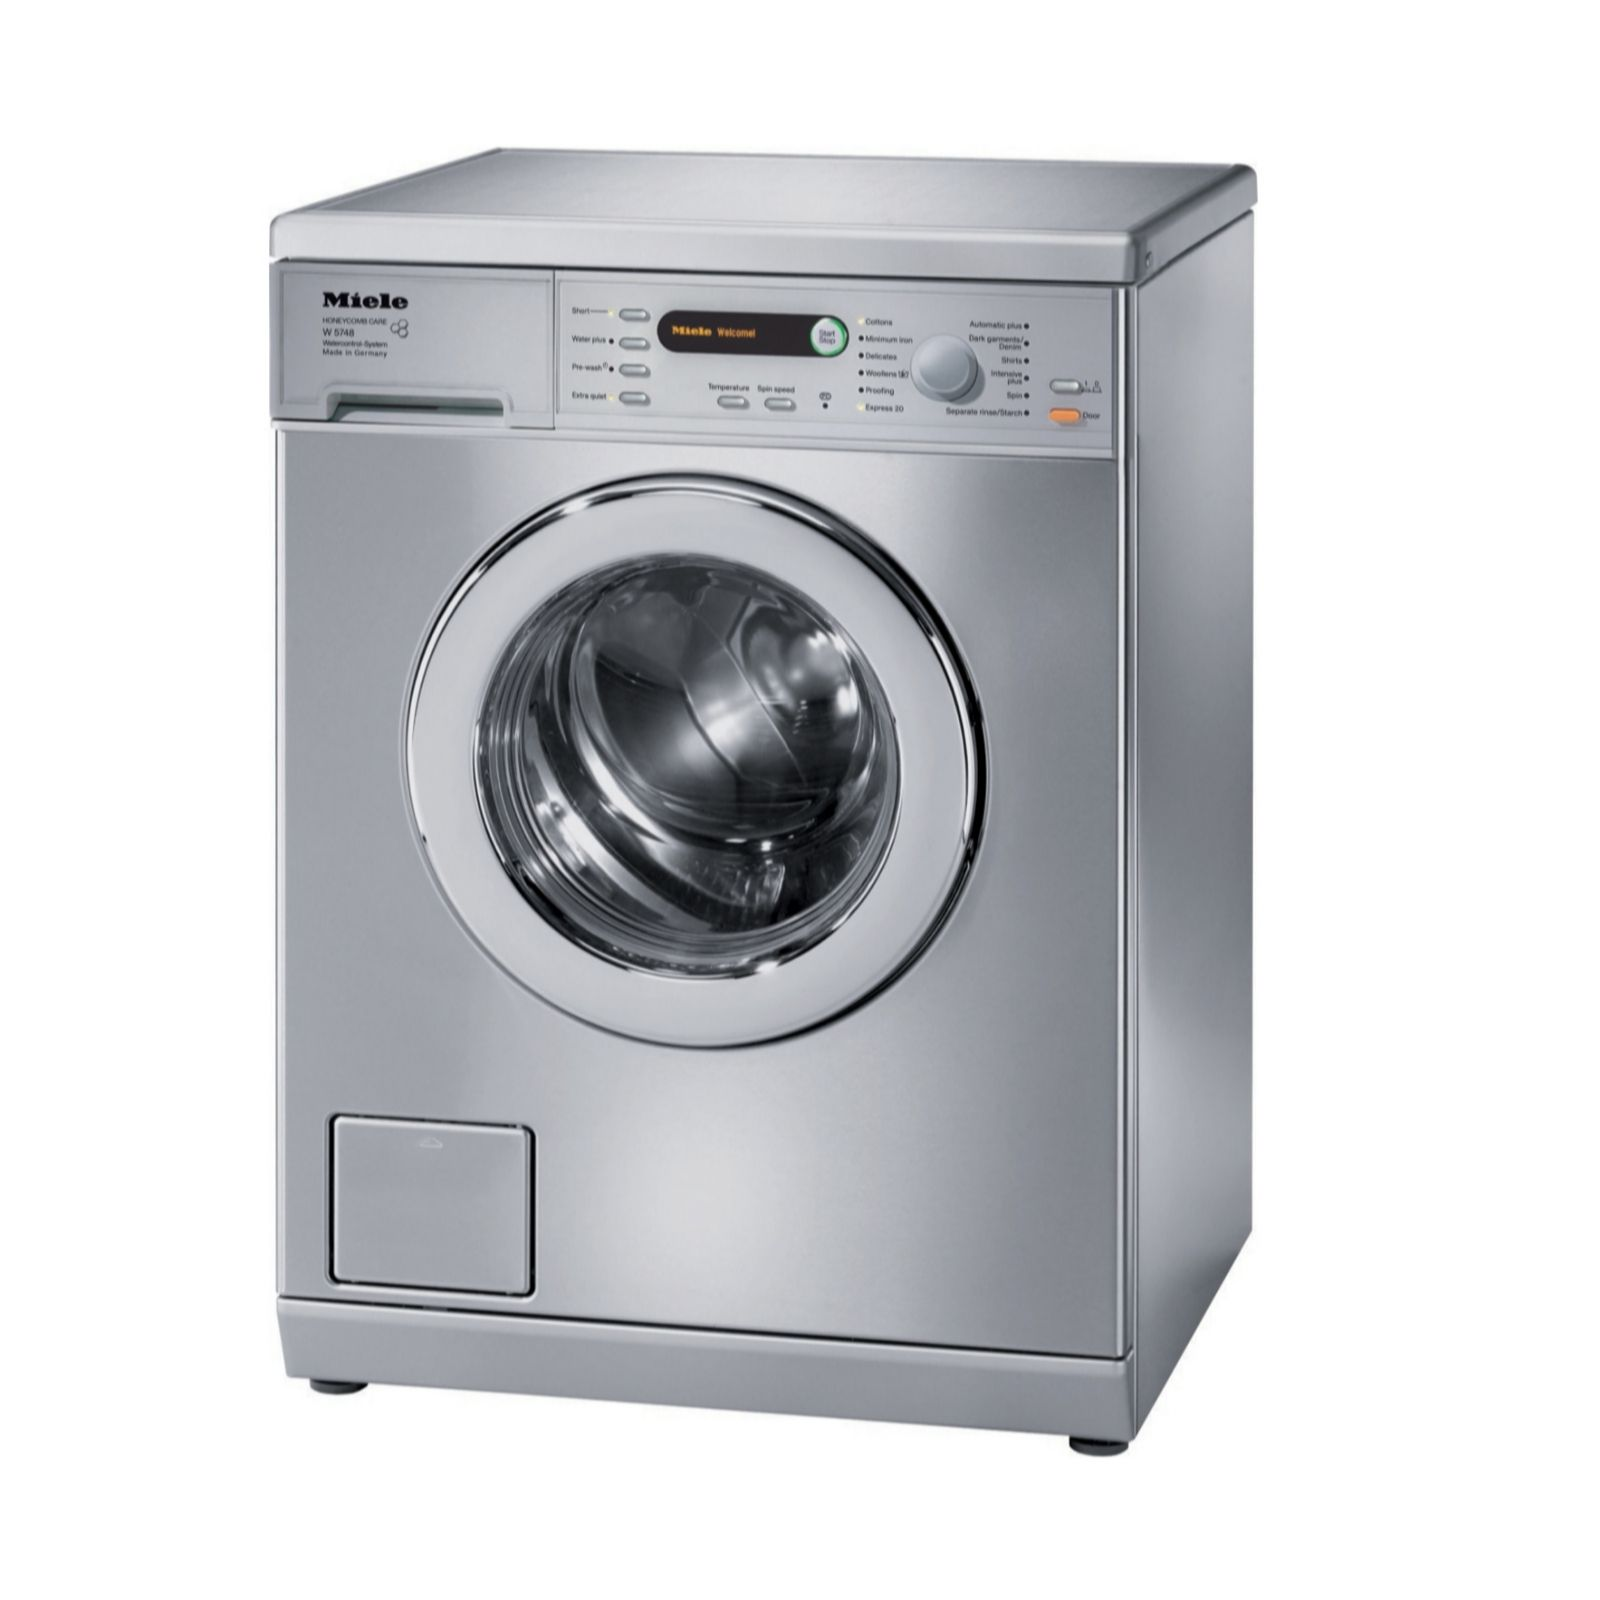 Washing Drying Machine Miele W5748 Washing Machine With 2xcolour 2xwhite Detergents